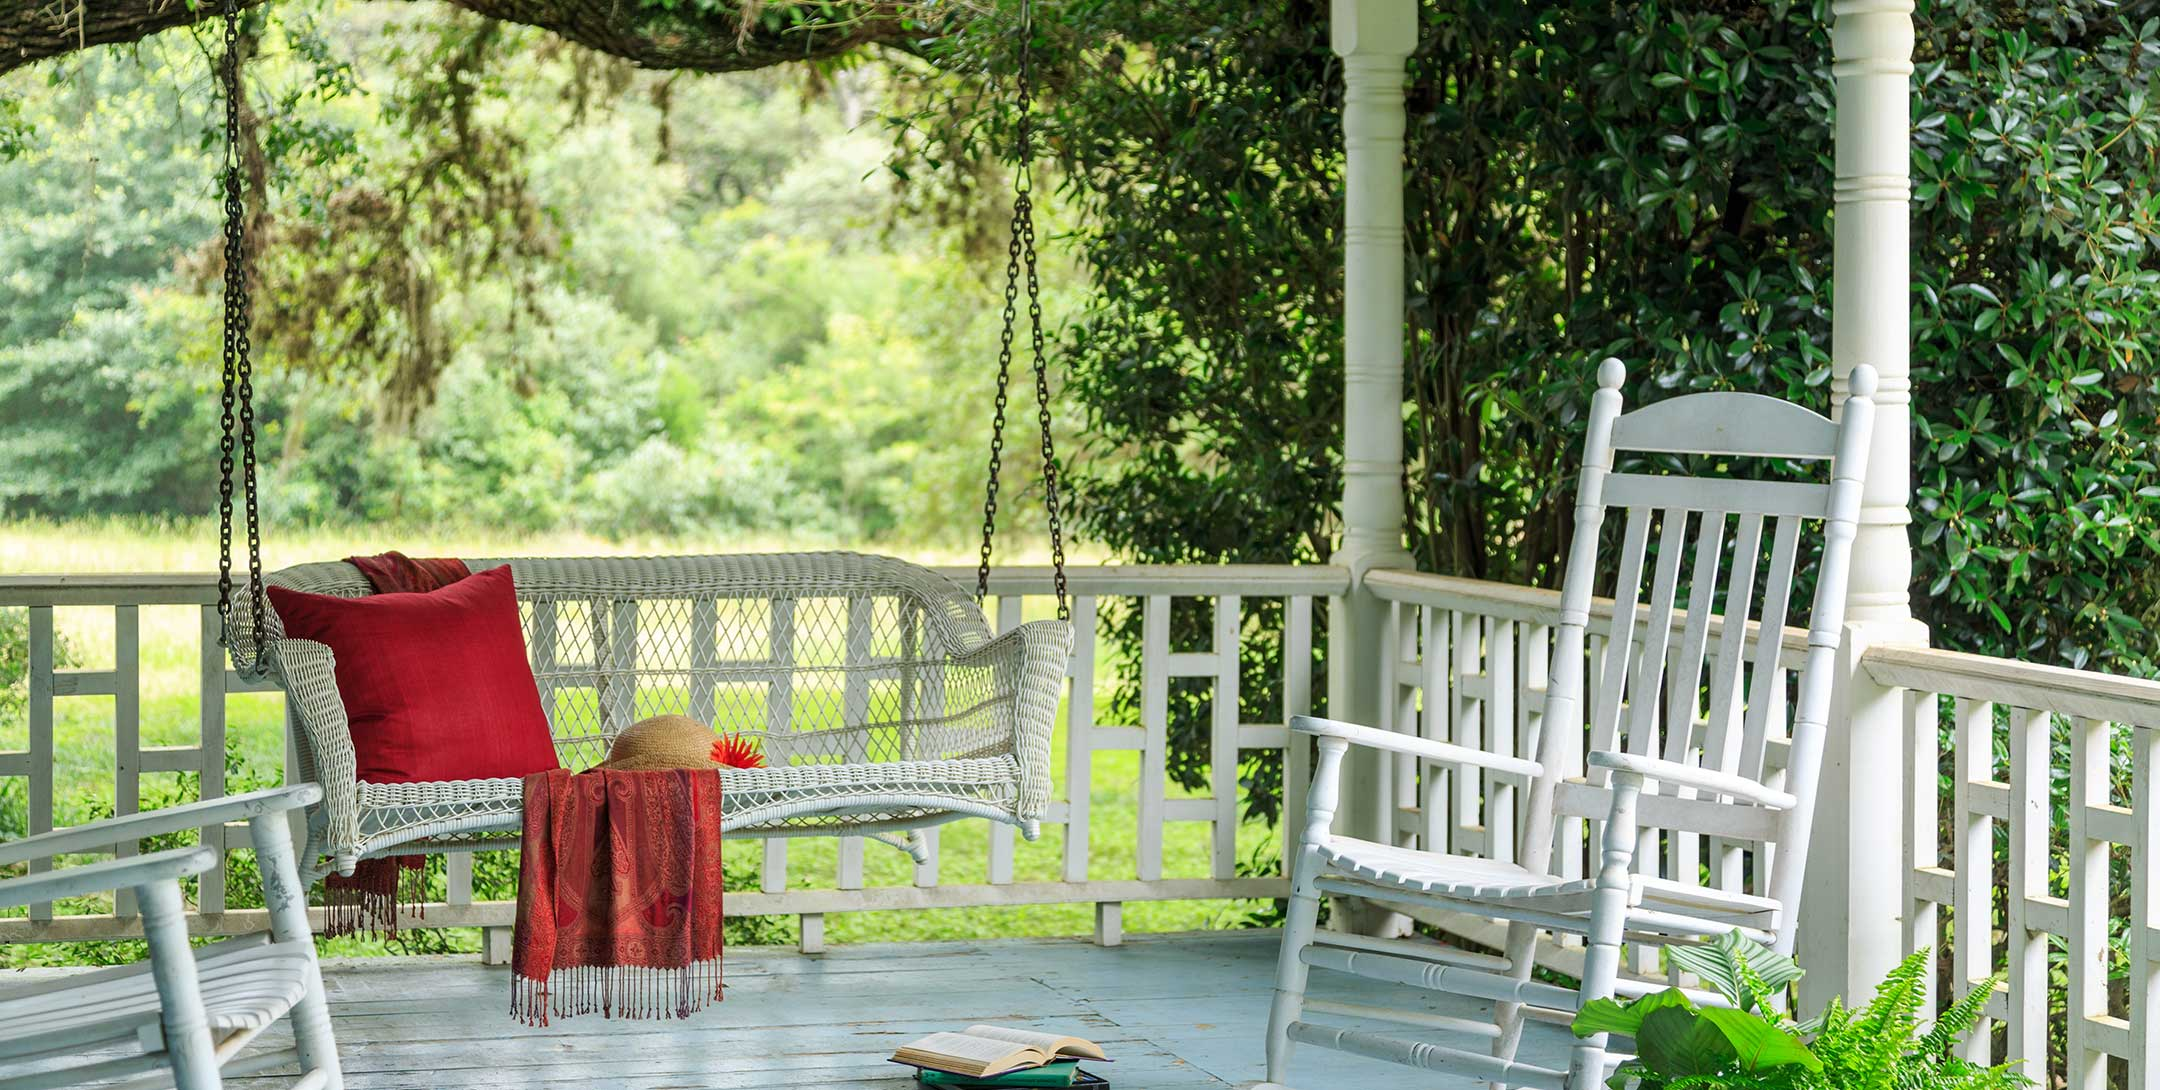 Lehmann House porch with swing